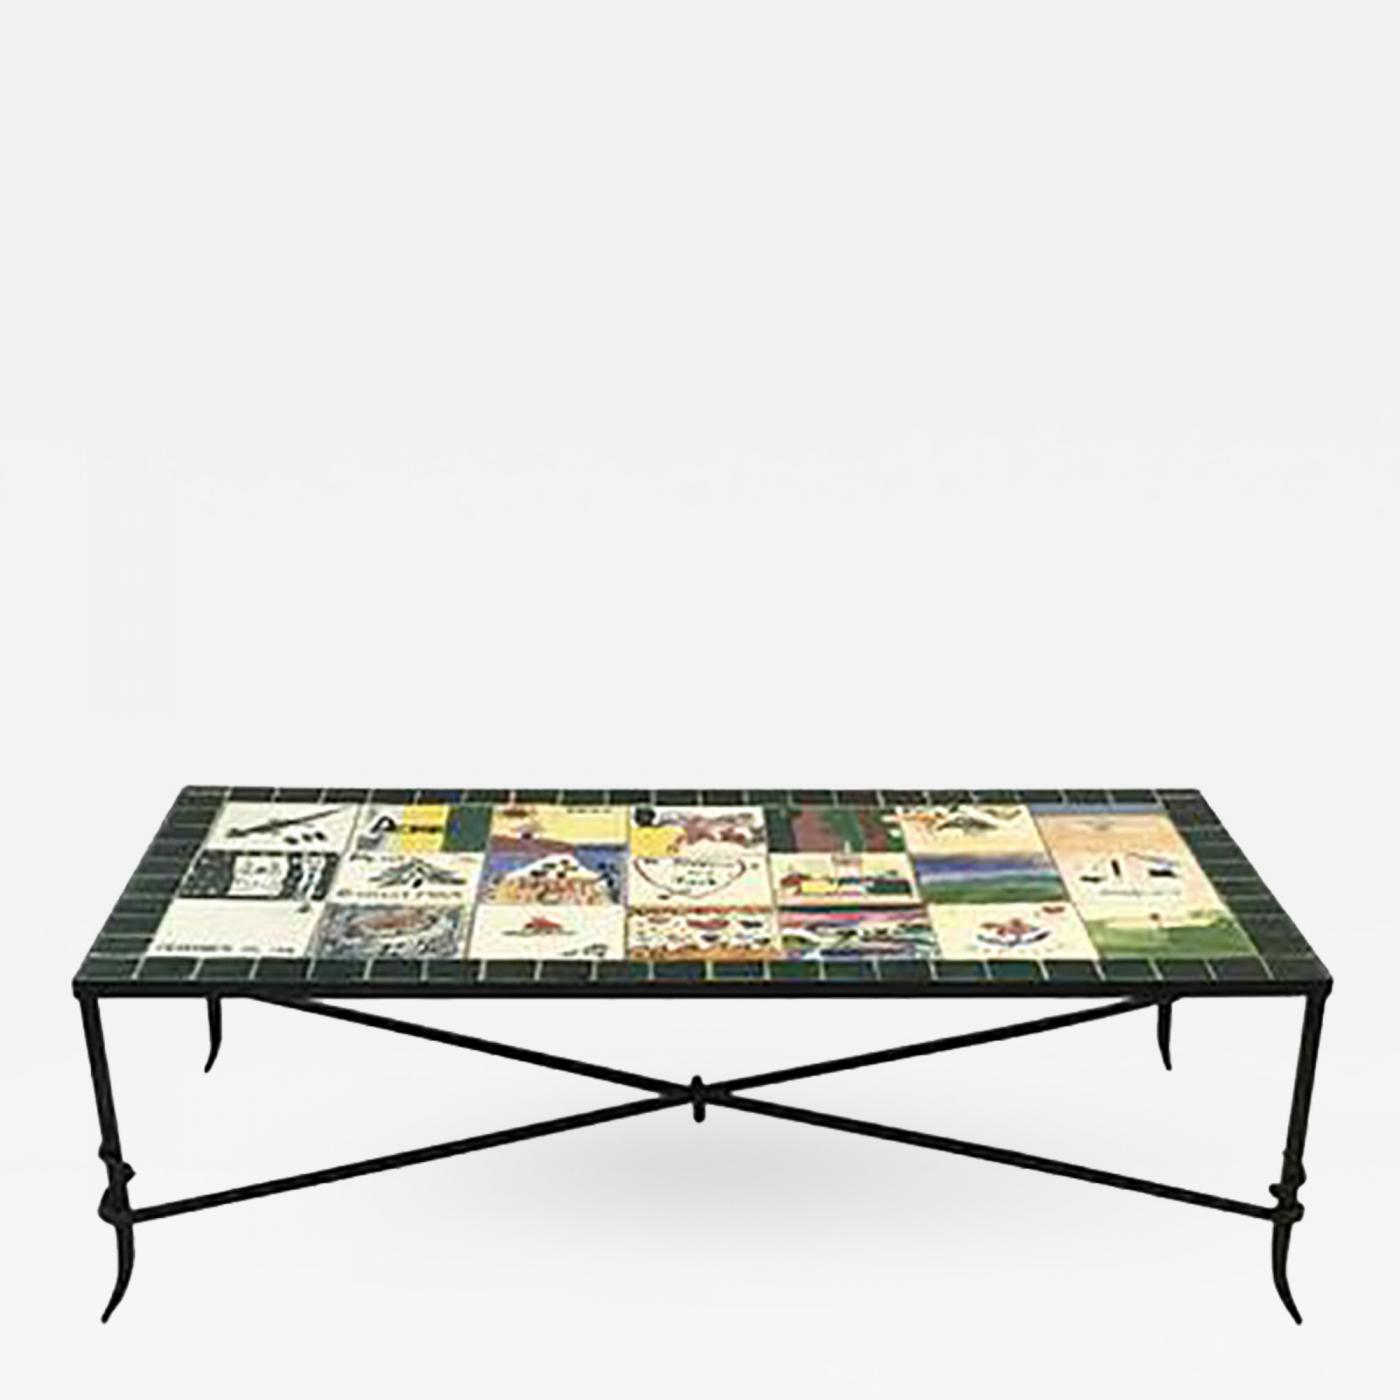 whimsical ceramic tile top coffee table with hand painted nostalgic scenes